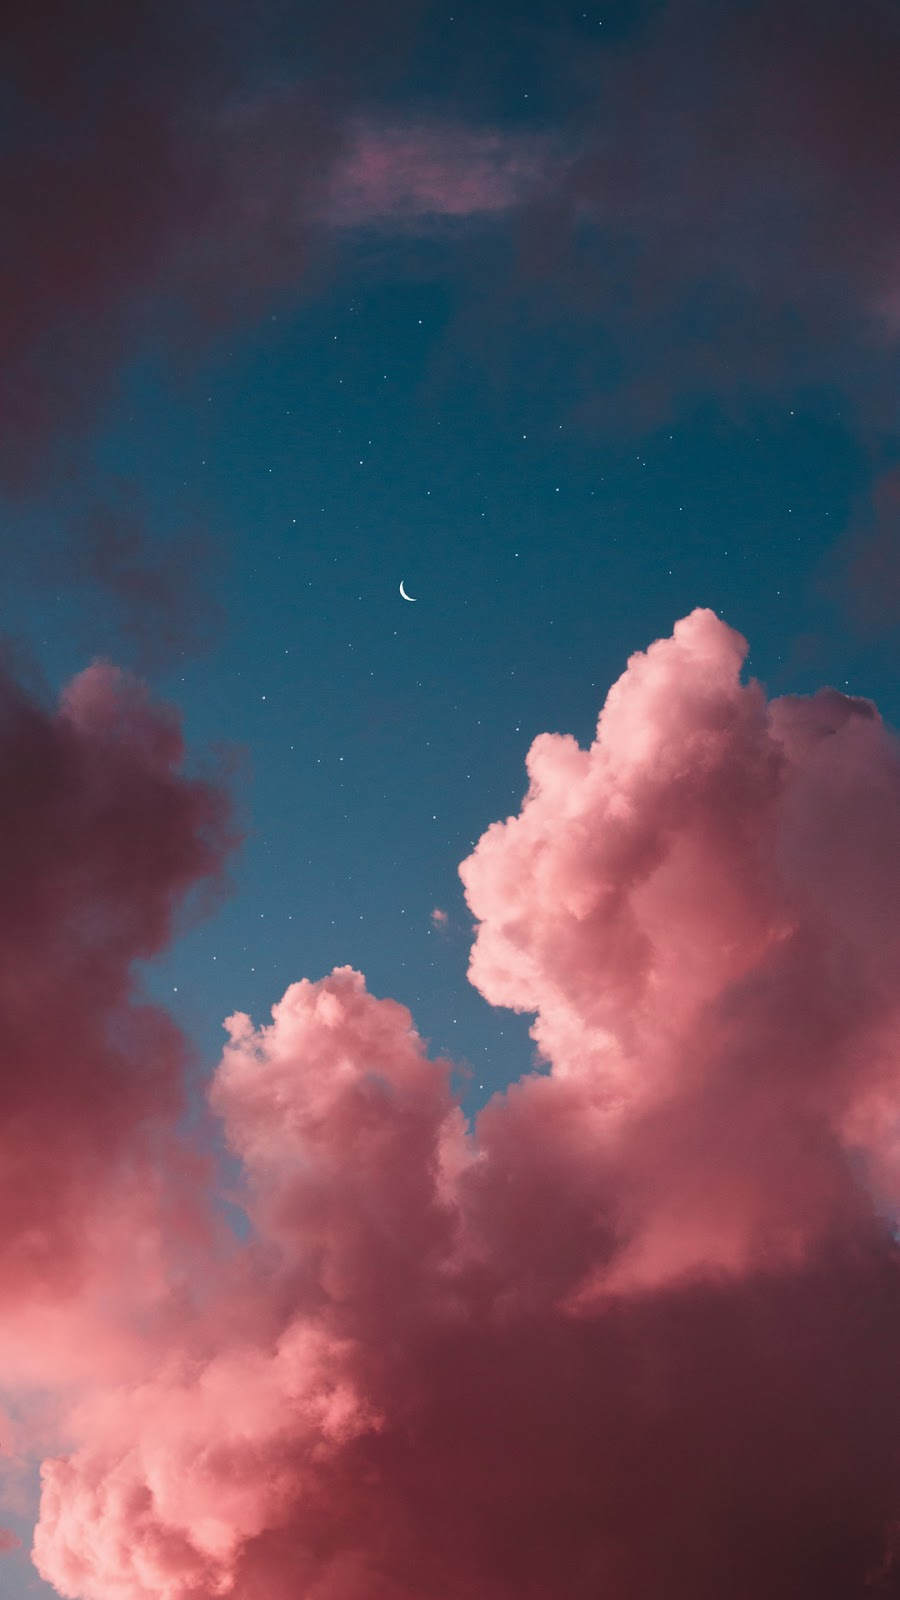 Unduh 800+ Wallpaper Aesthetic Sky HD Gratis